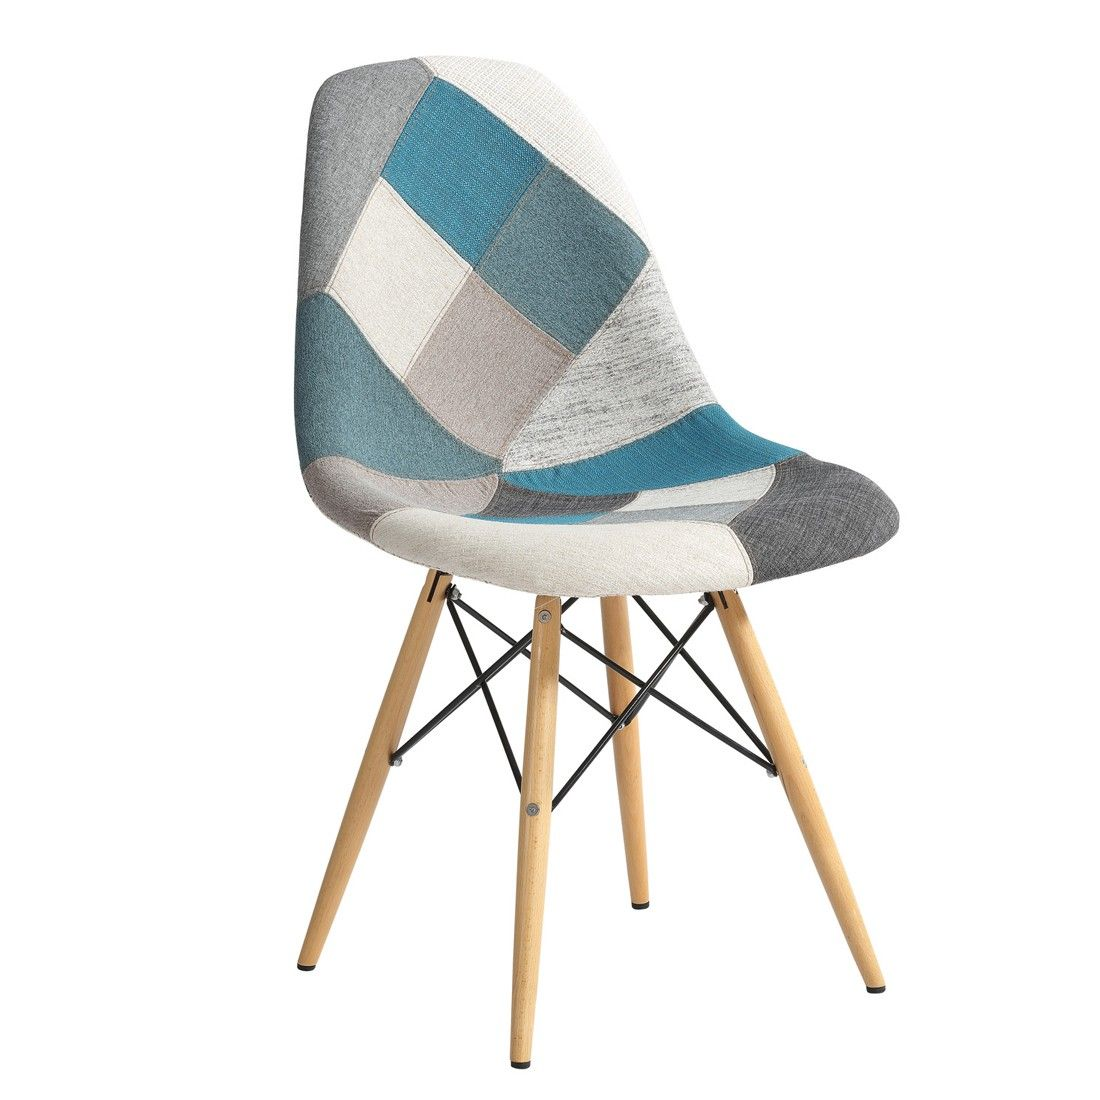 Eames Replica Dining Chair Patchwork Blue 229 00 Nzd New Zealand